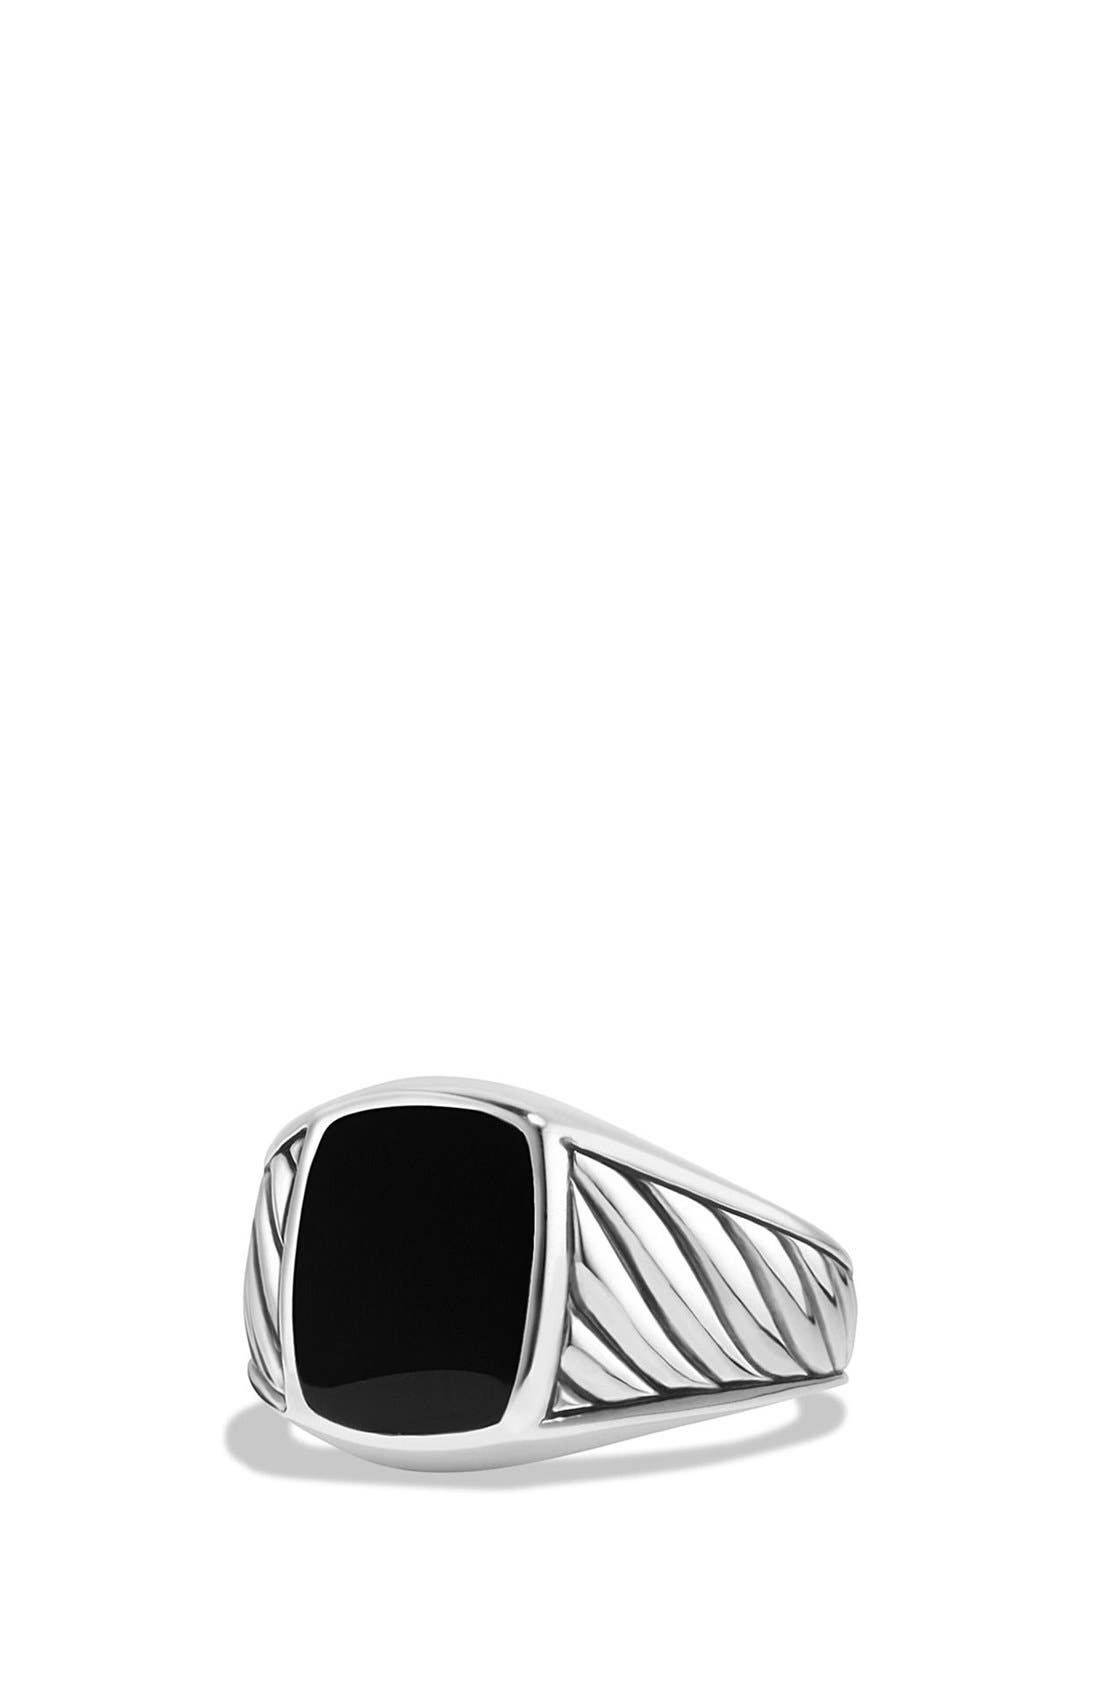 'Cable Classics' Signet Ring,                             Main thumbnail 1, color,                             Silver/ Black Onyx